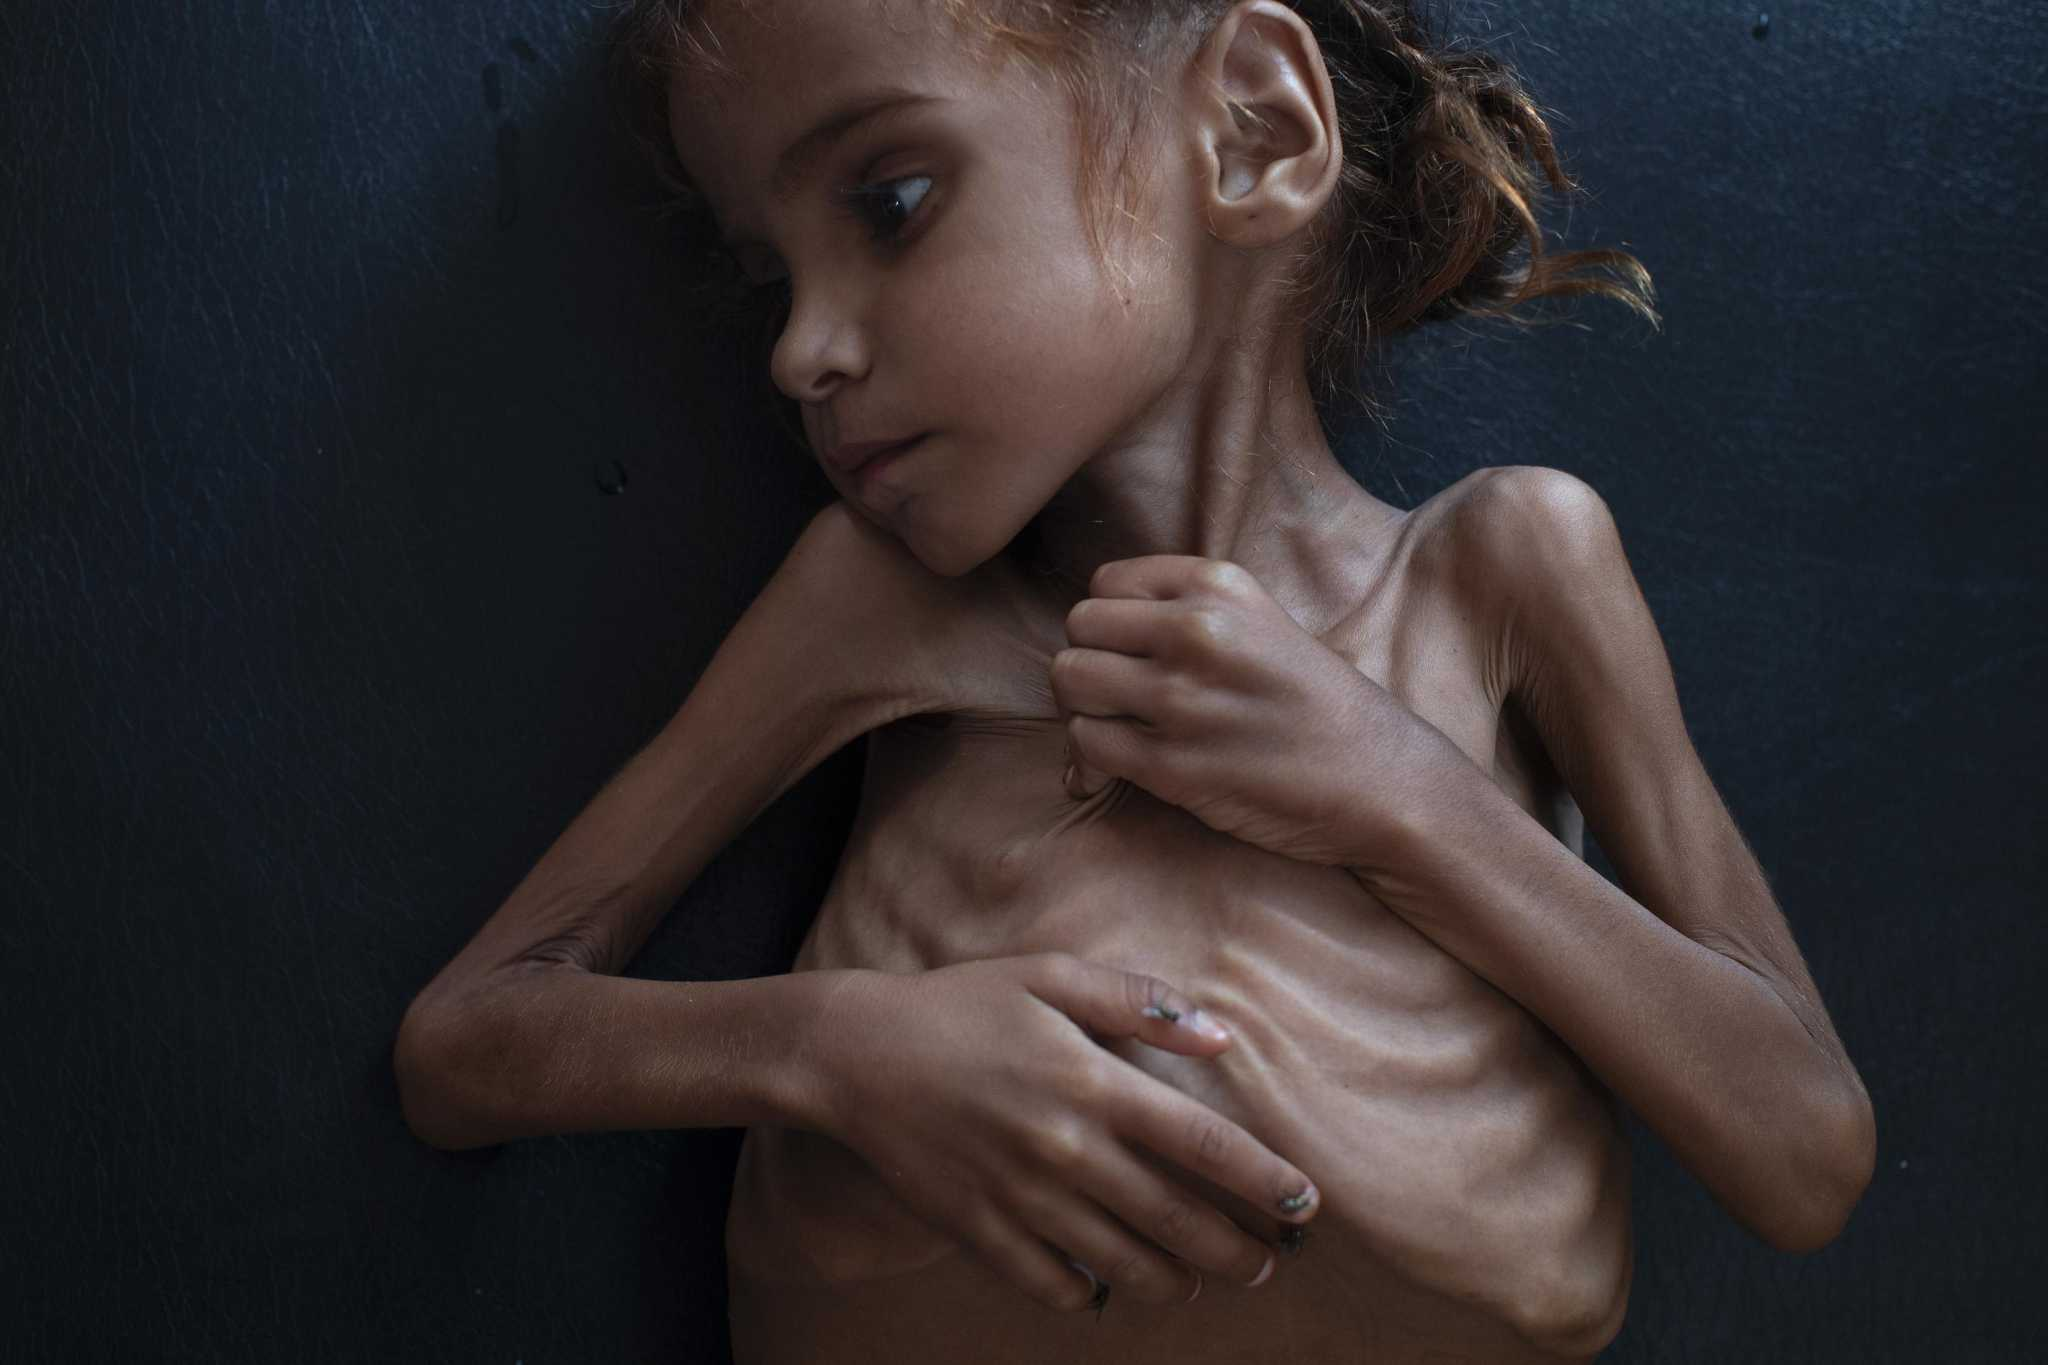 This photo should open your eyes to American sins in Yemen [Editorial]